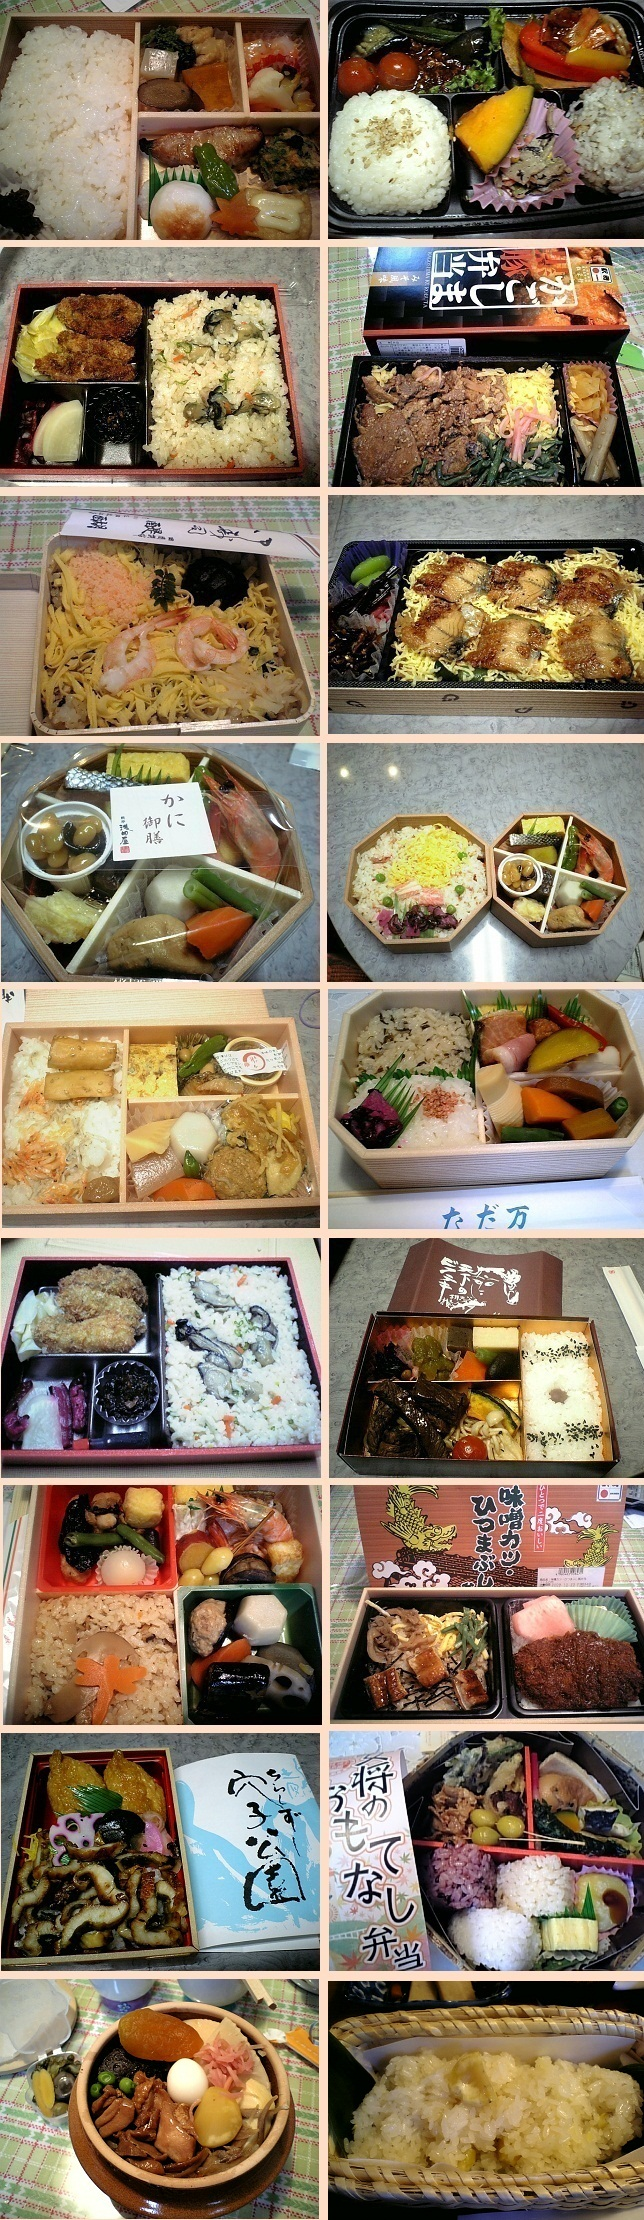 blog09foodbox1.jpg